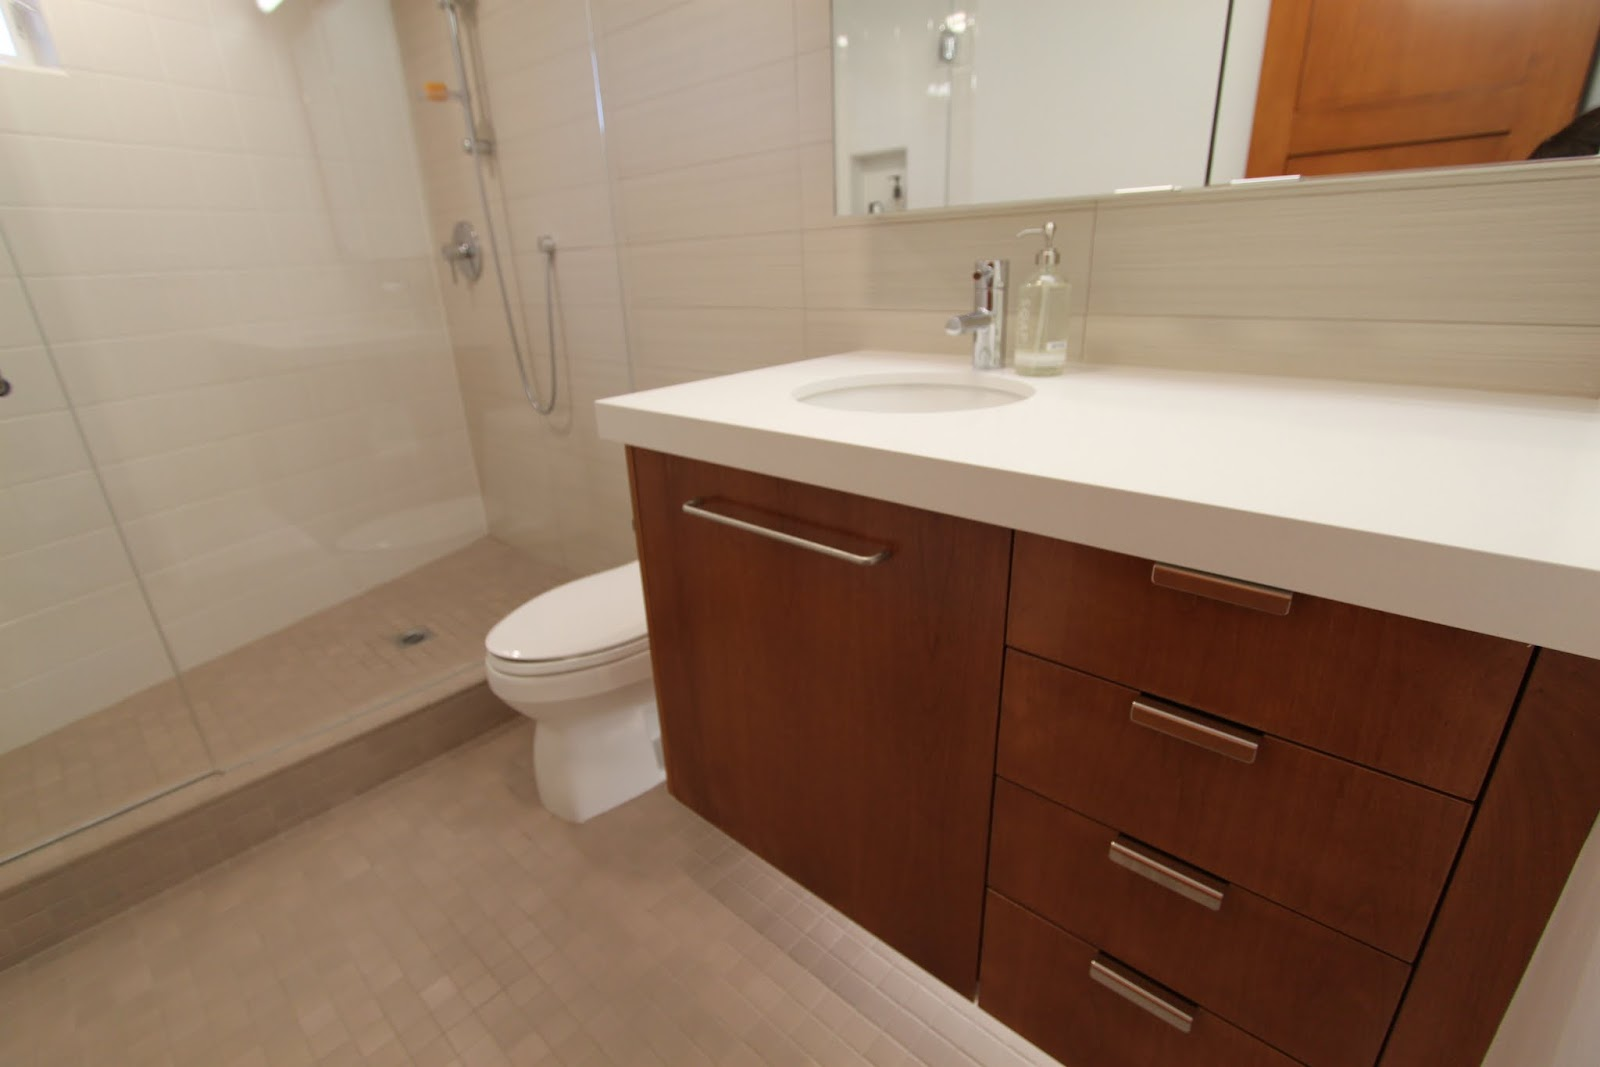 Top five favorite features mid century bathroom remodel for Modern bathroom renovations